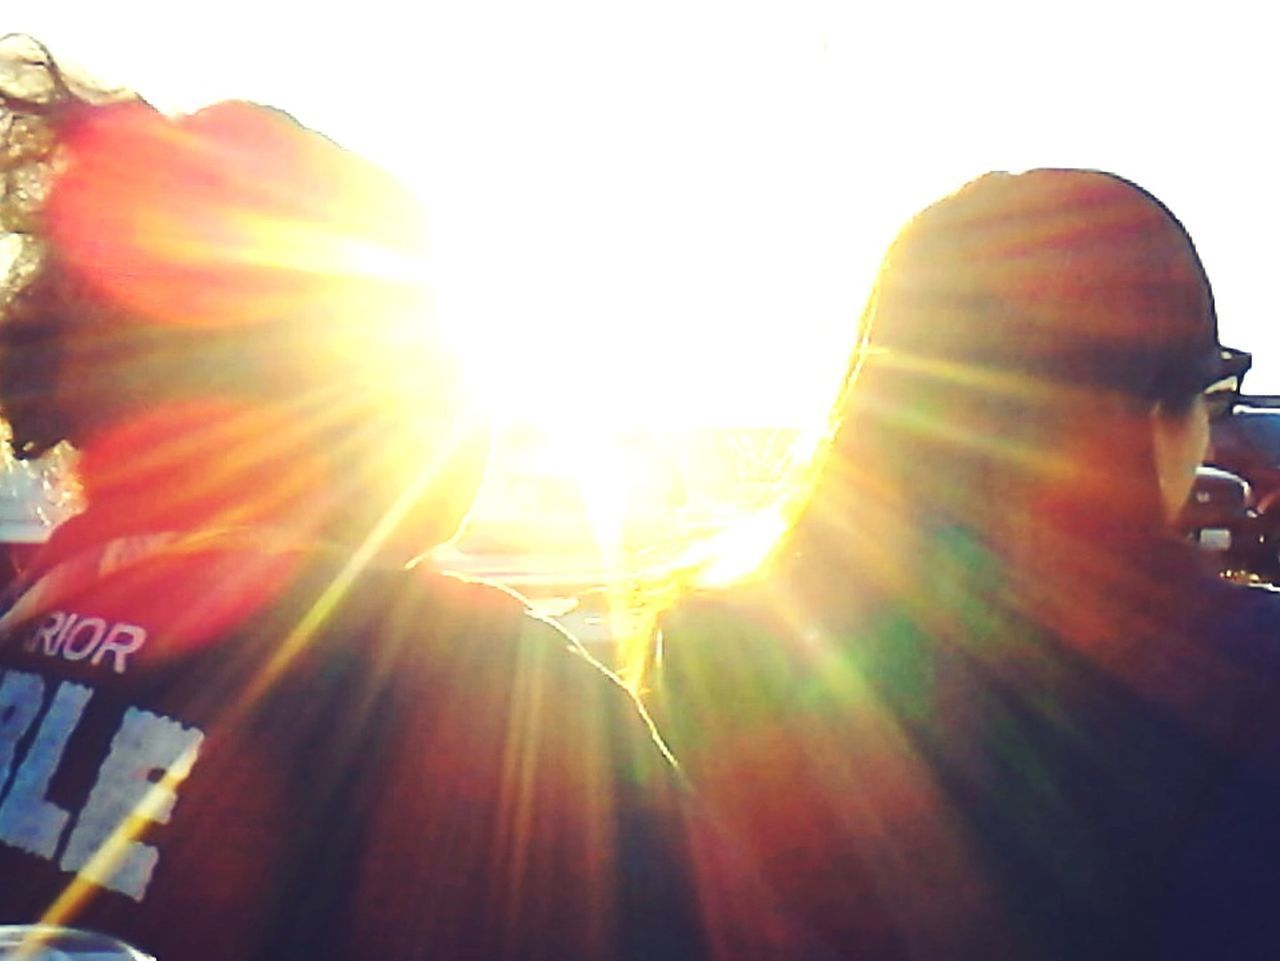 sunbeam, lens flare, sun, sunlight, day, outdoors, nature, one person, close-up, sky, people